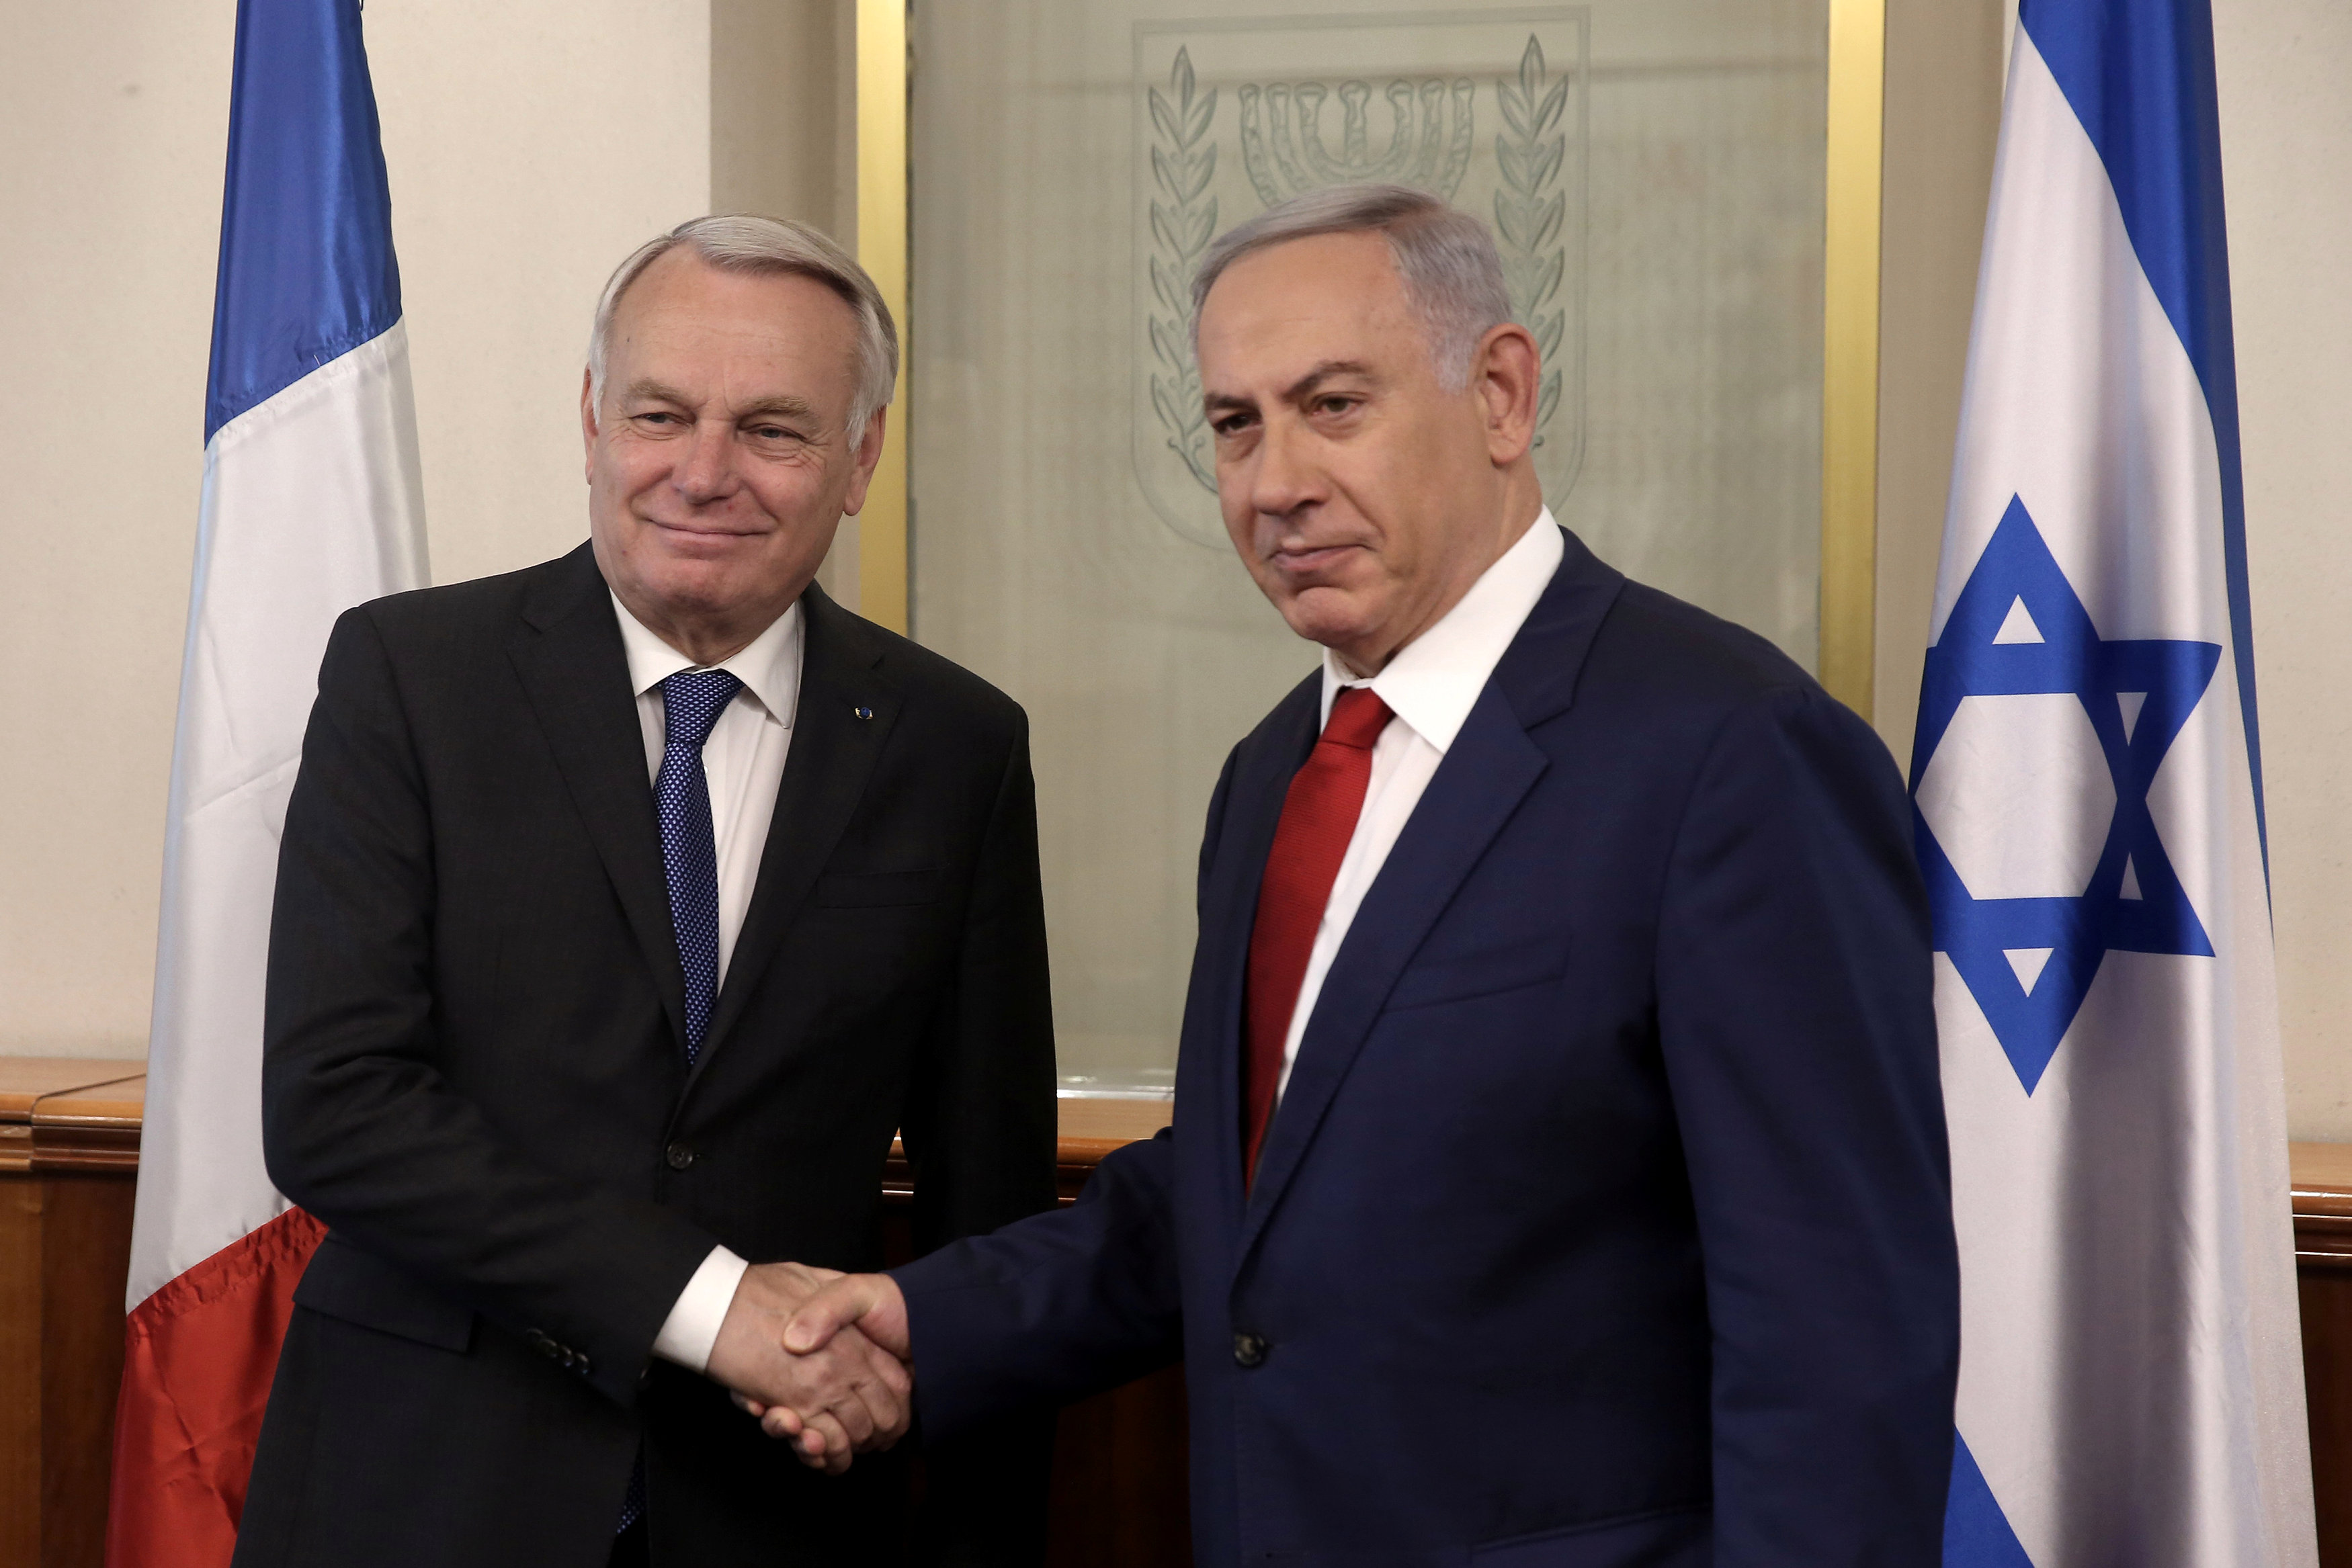 Israeli Prime Minister Benjamin Netanyahu shakes hands with French Foreign Minister Jean-Marc Ayrault